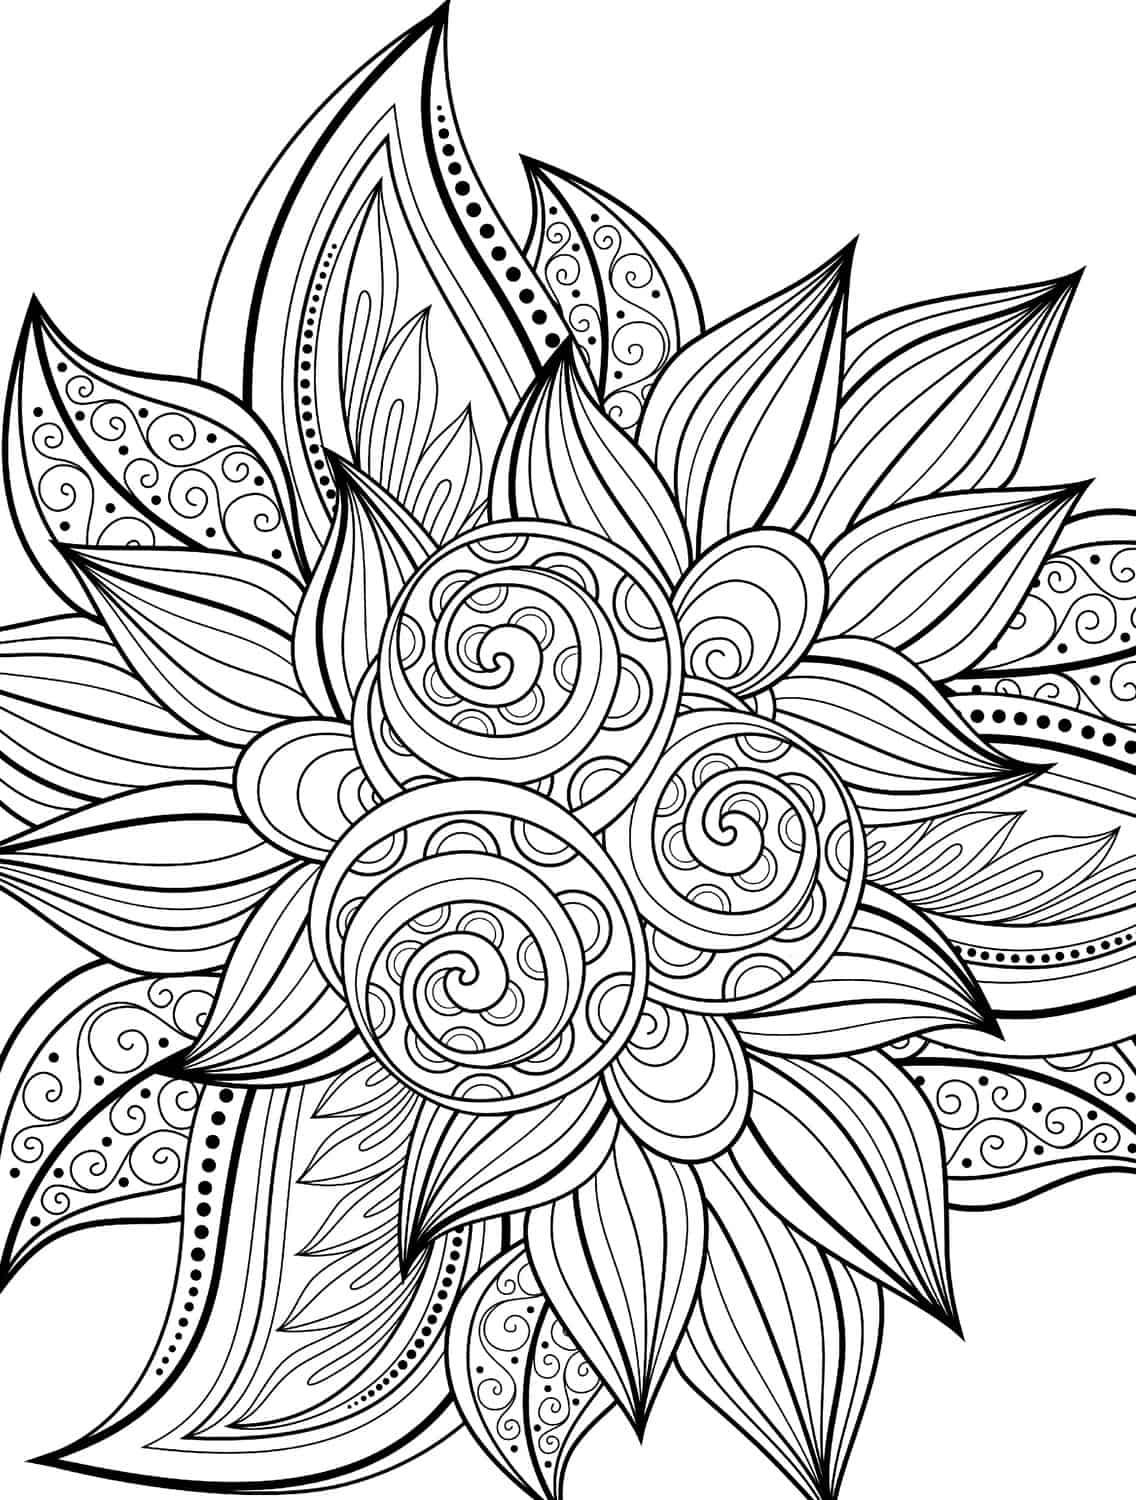 Free coloring pages online